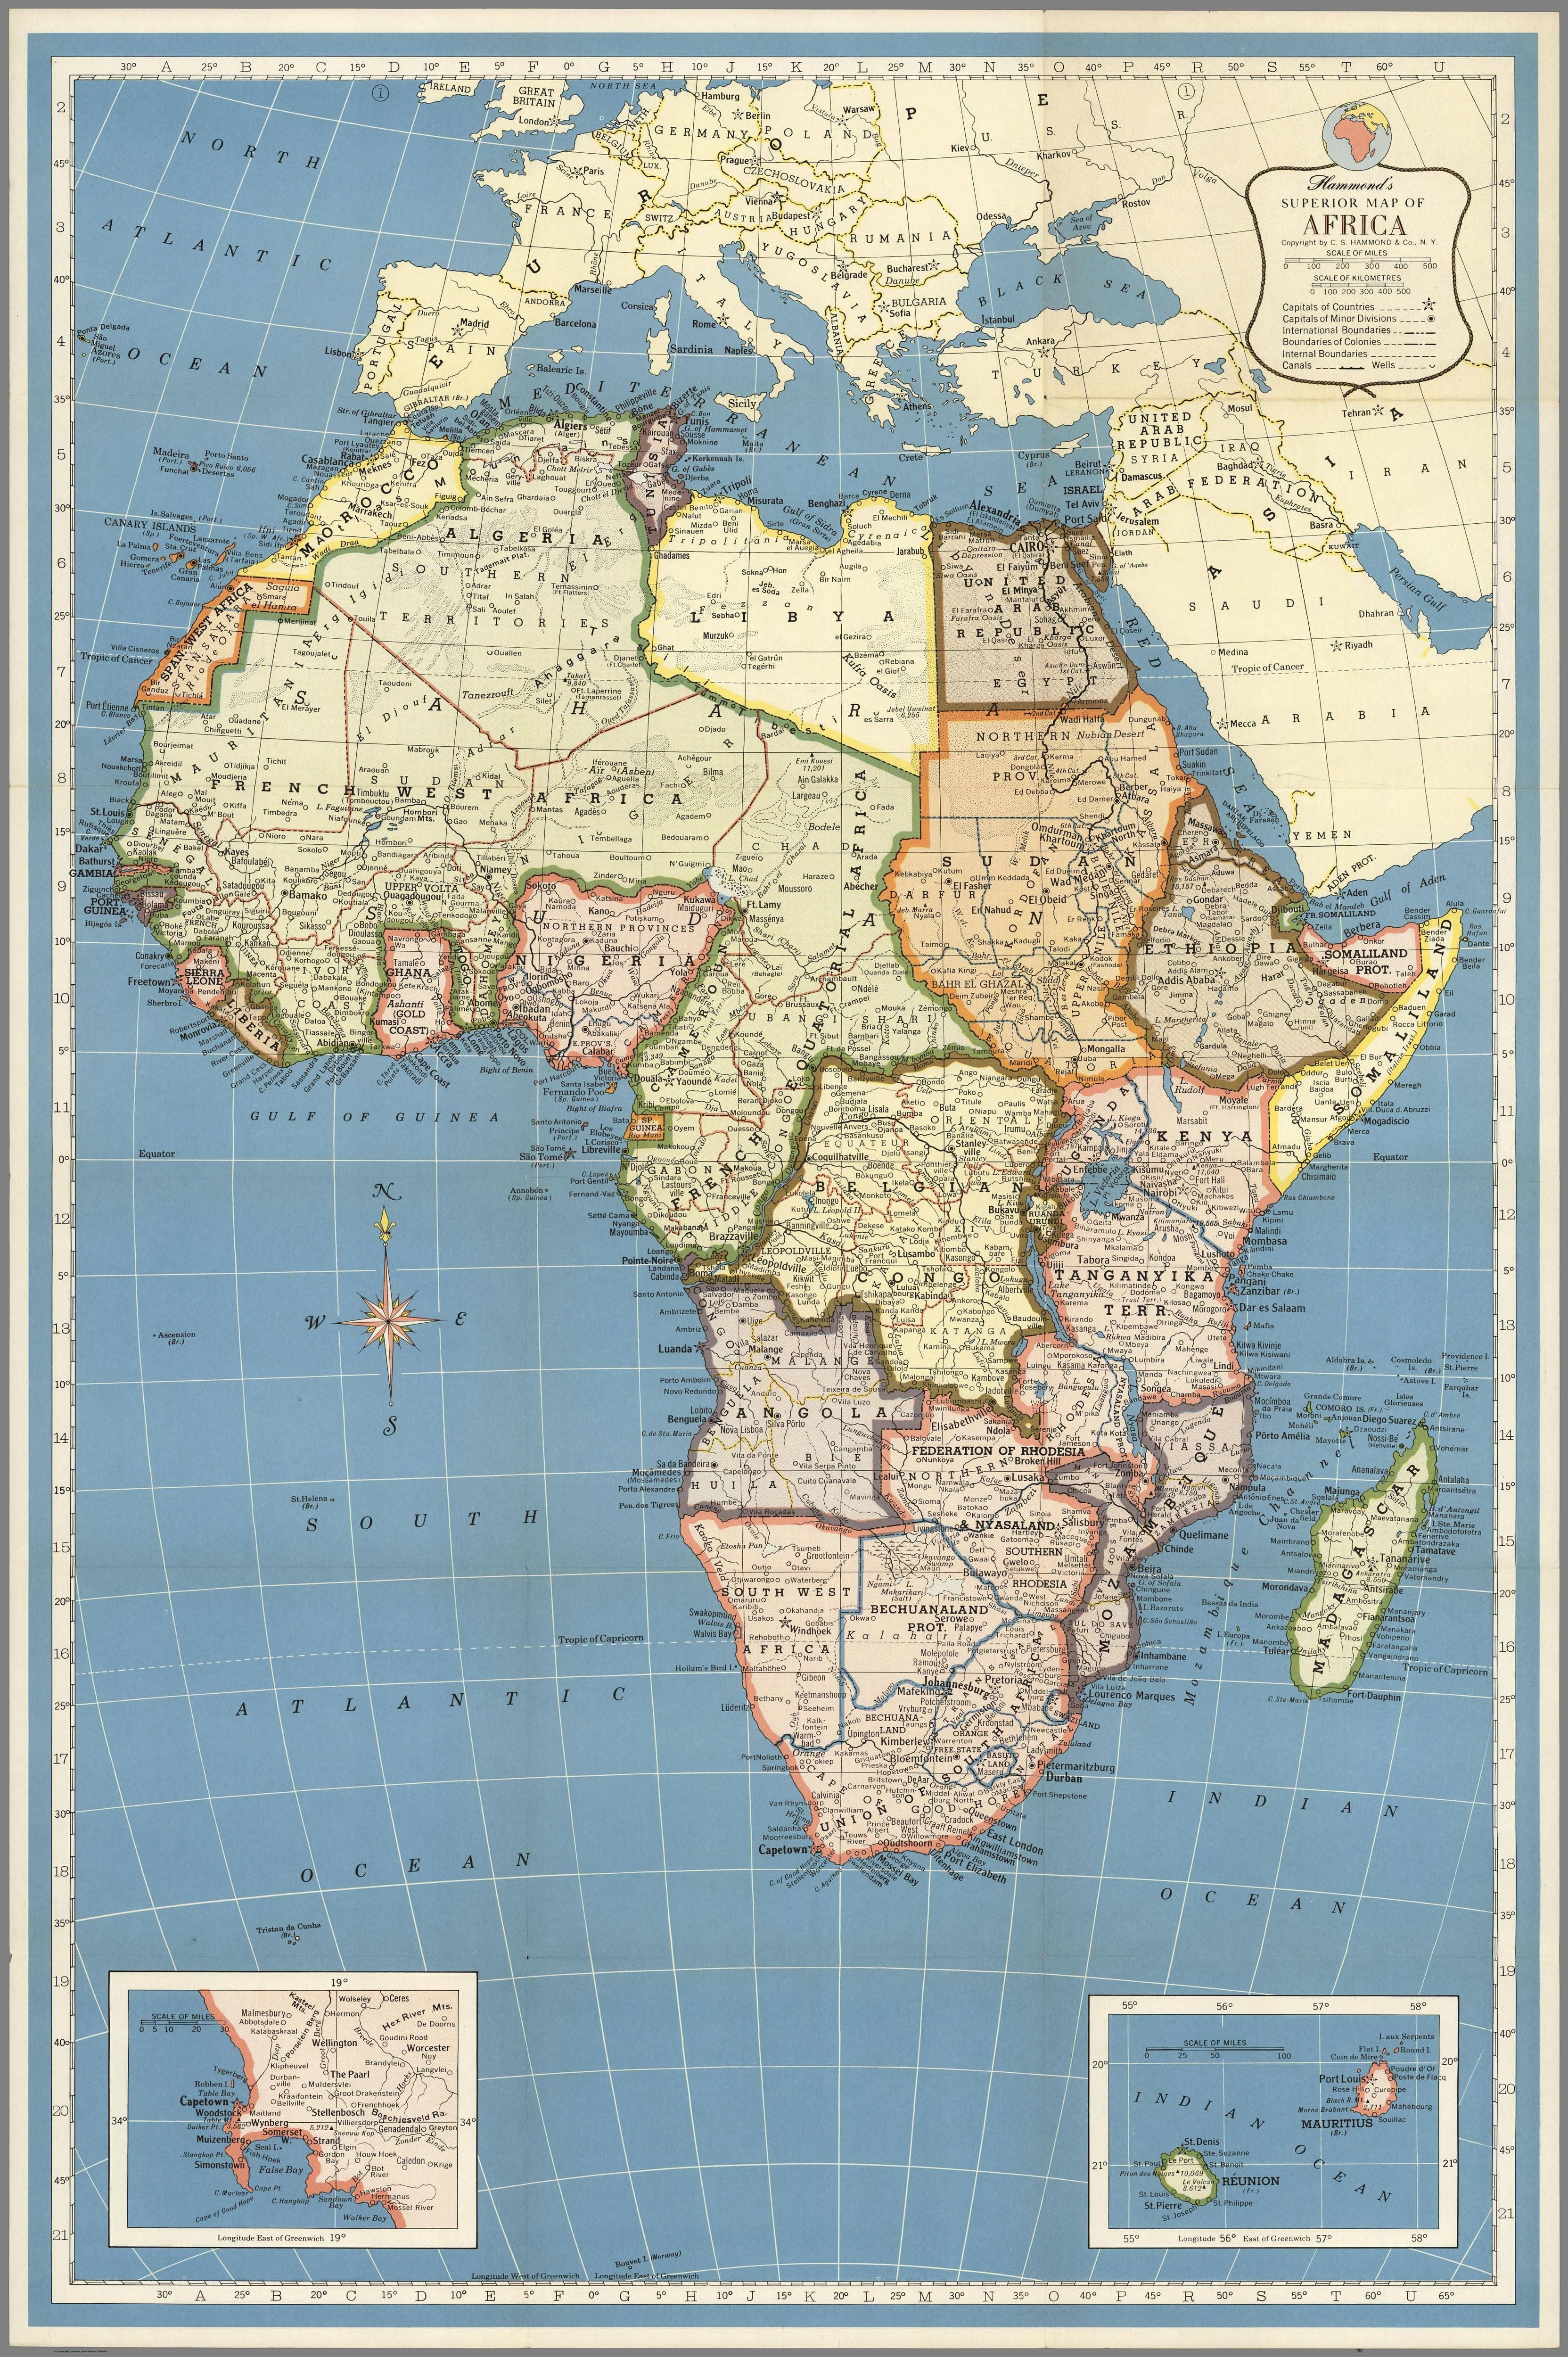 1957 National Geographic Map of Africa | Maps | National